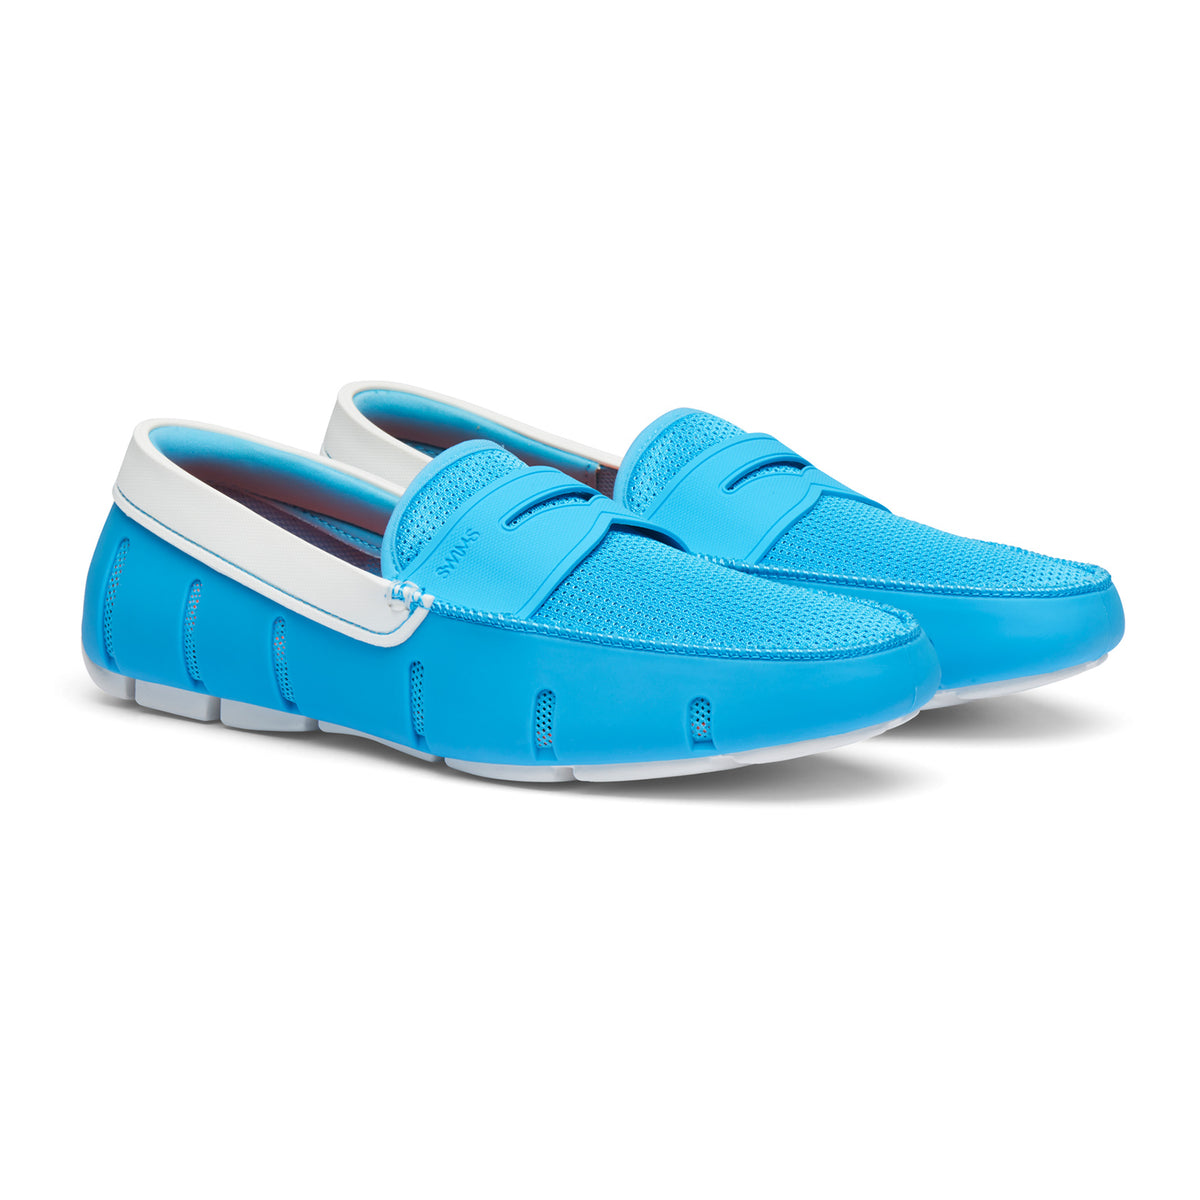 Penny Loafer - background::white,variant::Norse Blue/White